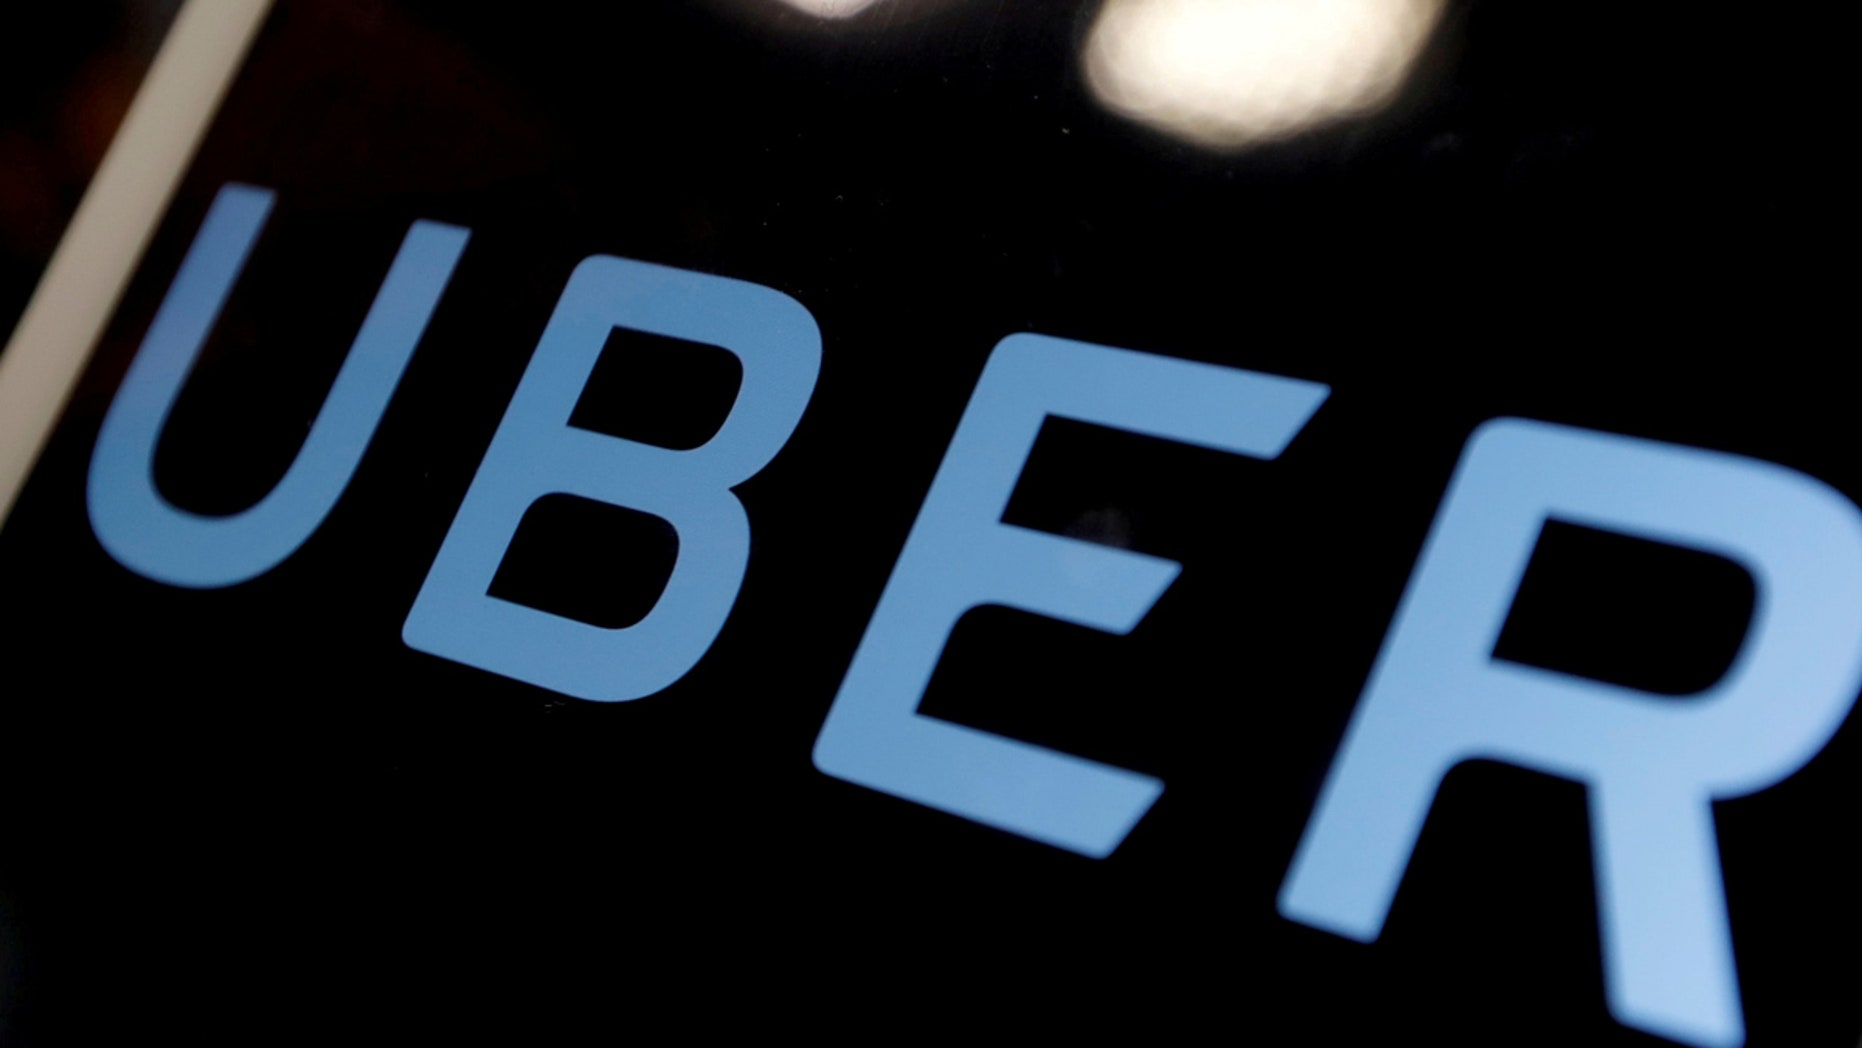 Uber and other ride-sharing apps have come under fire in the wake of several New York City taxi driver suicides.